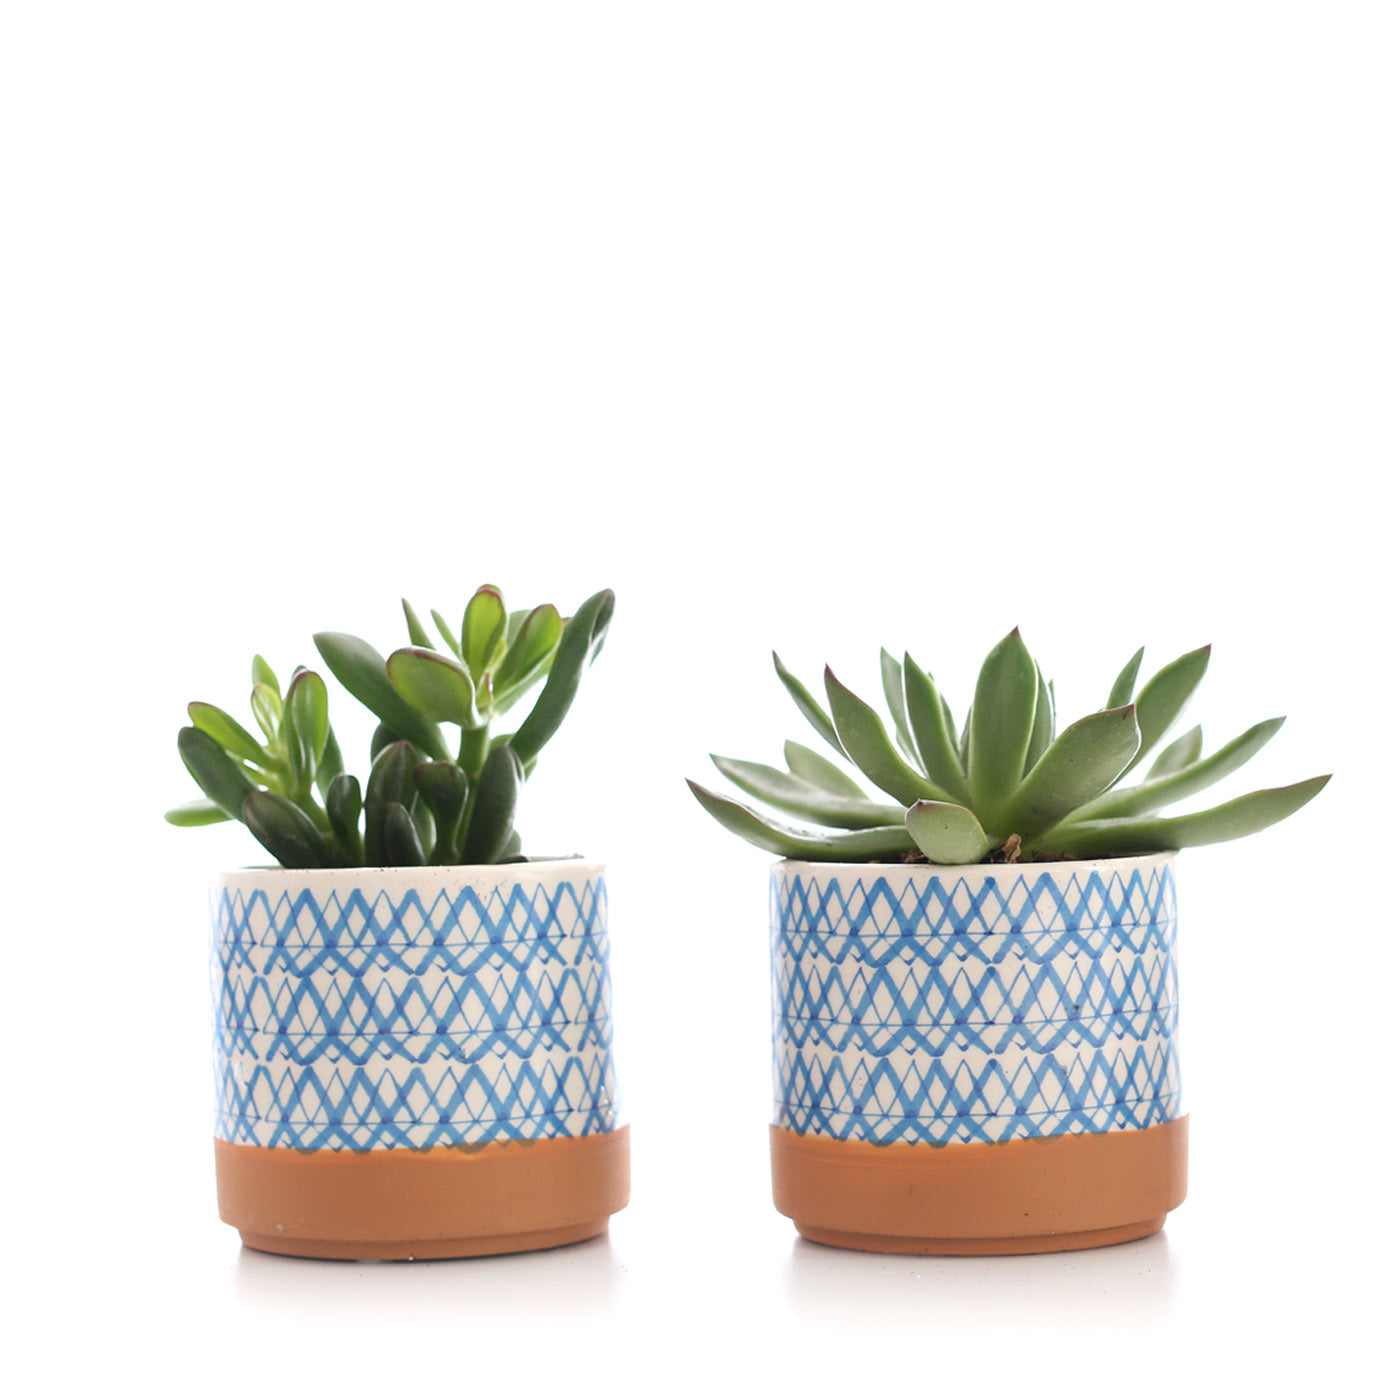 Mini Succulent in Blue Patterned Ceramic (Pack of 2)